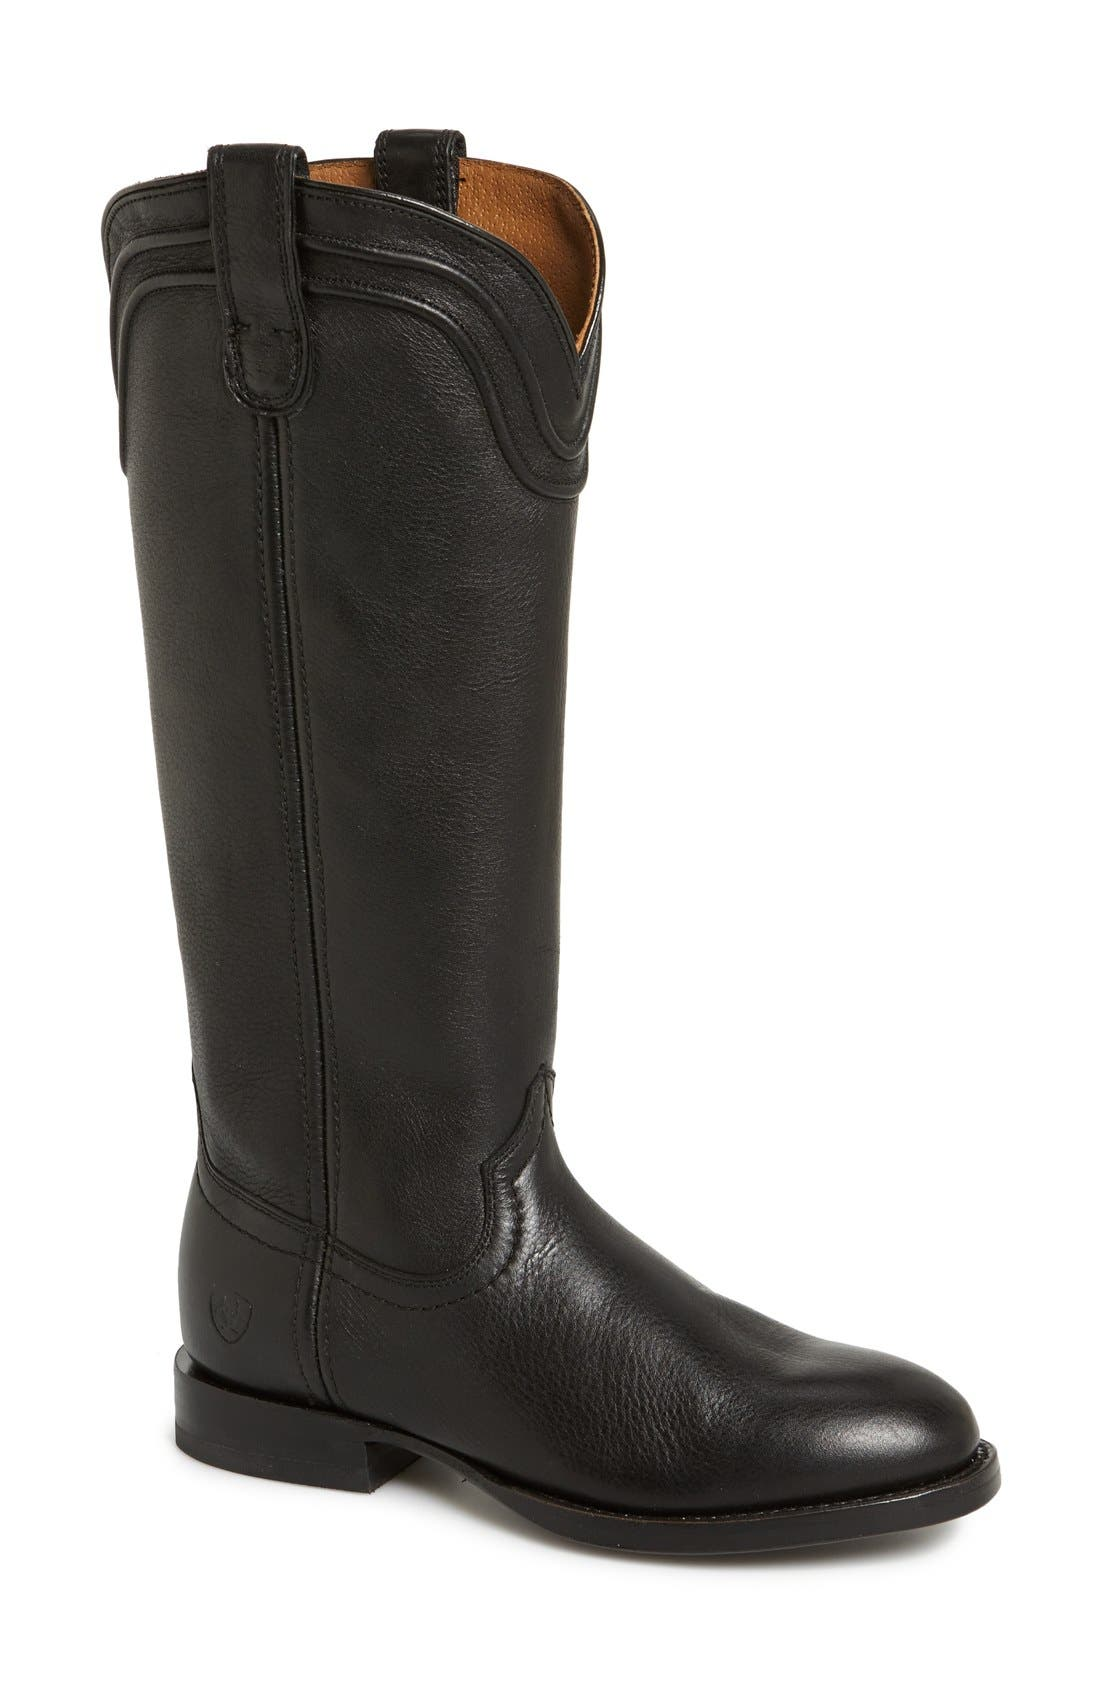 Main Image - Ariat 'About Town' Western Boot (Women)